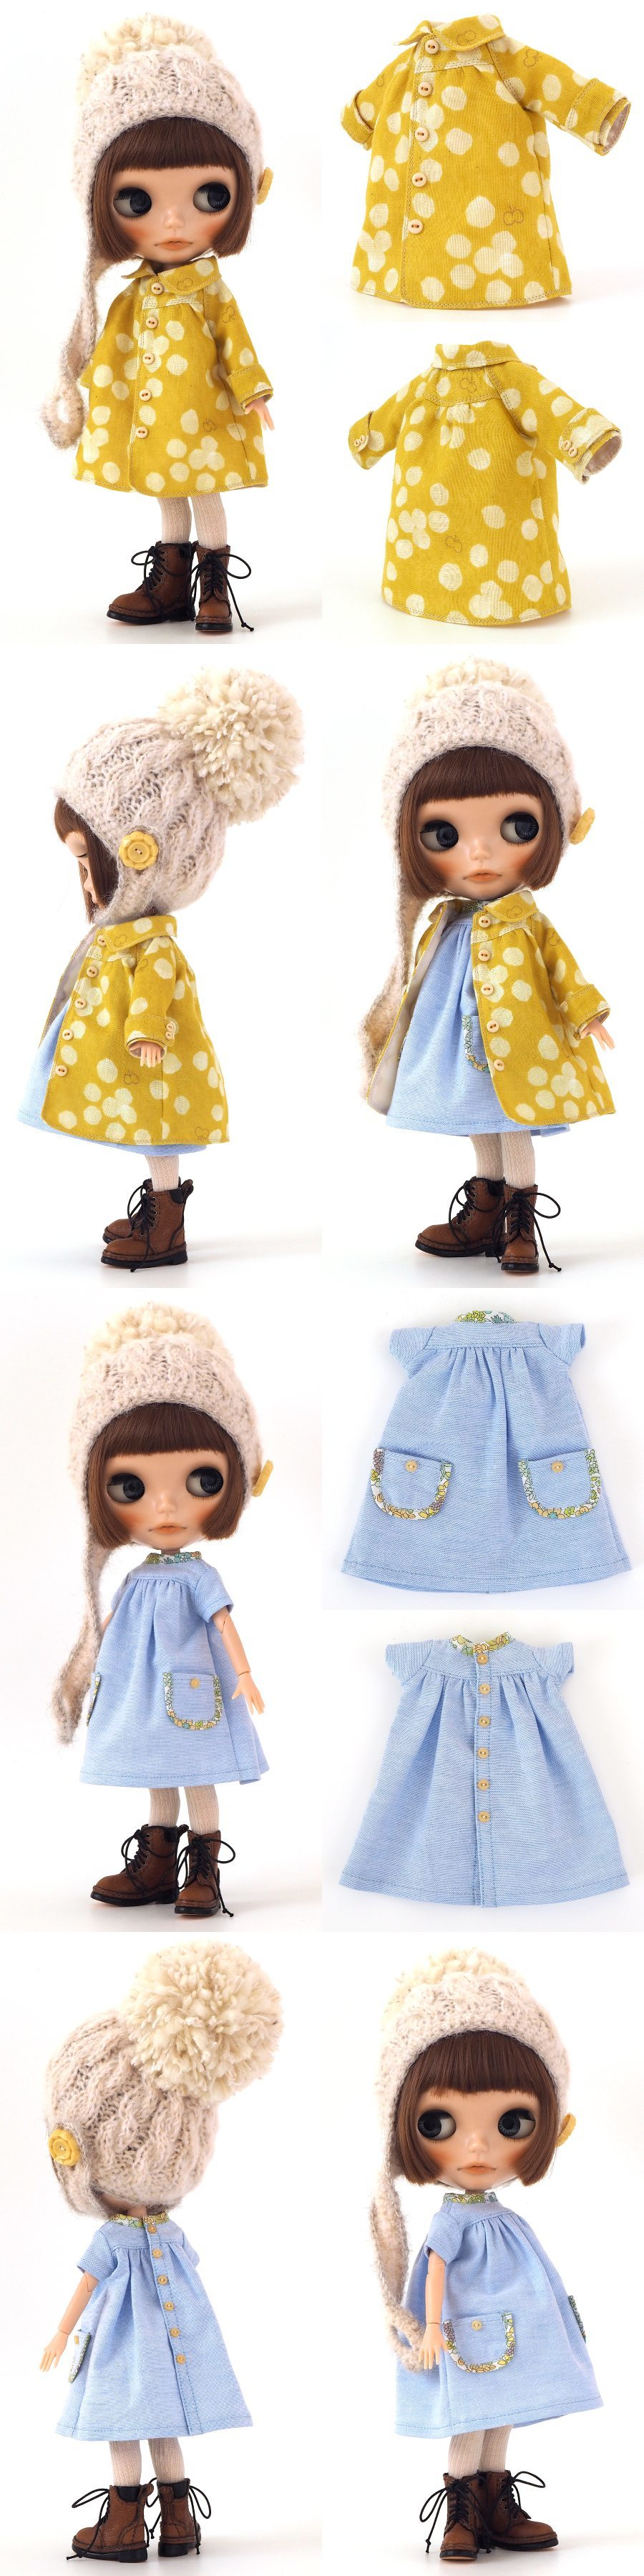 ** Blythe outfit ** Lucalily 526**_d0217189_11350087.jpg